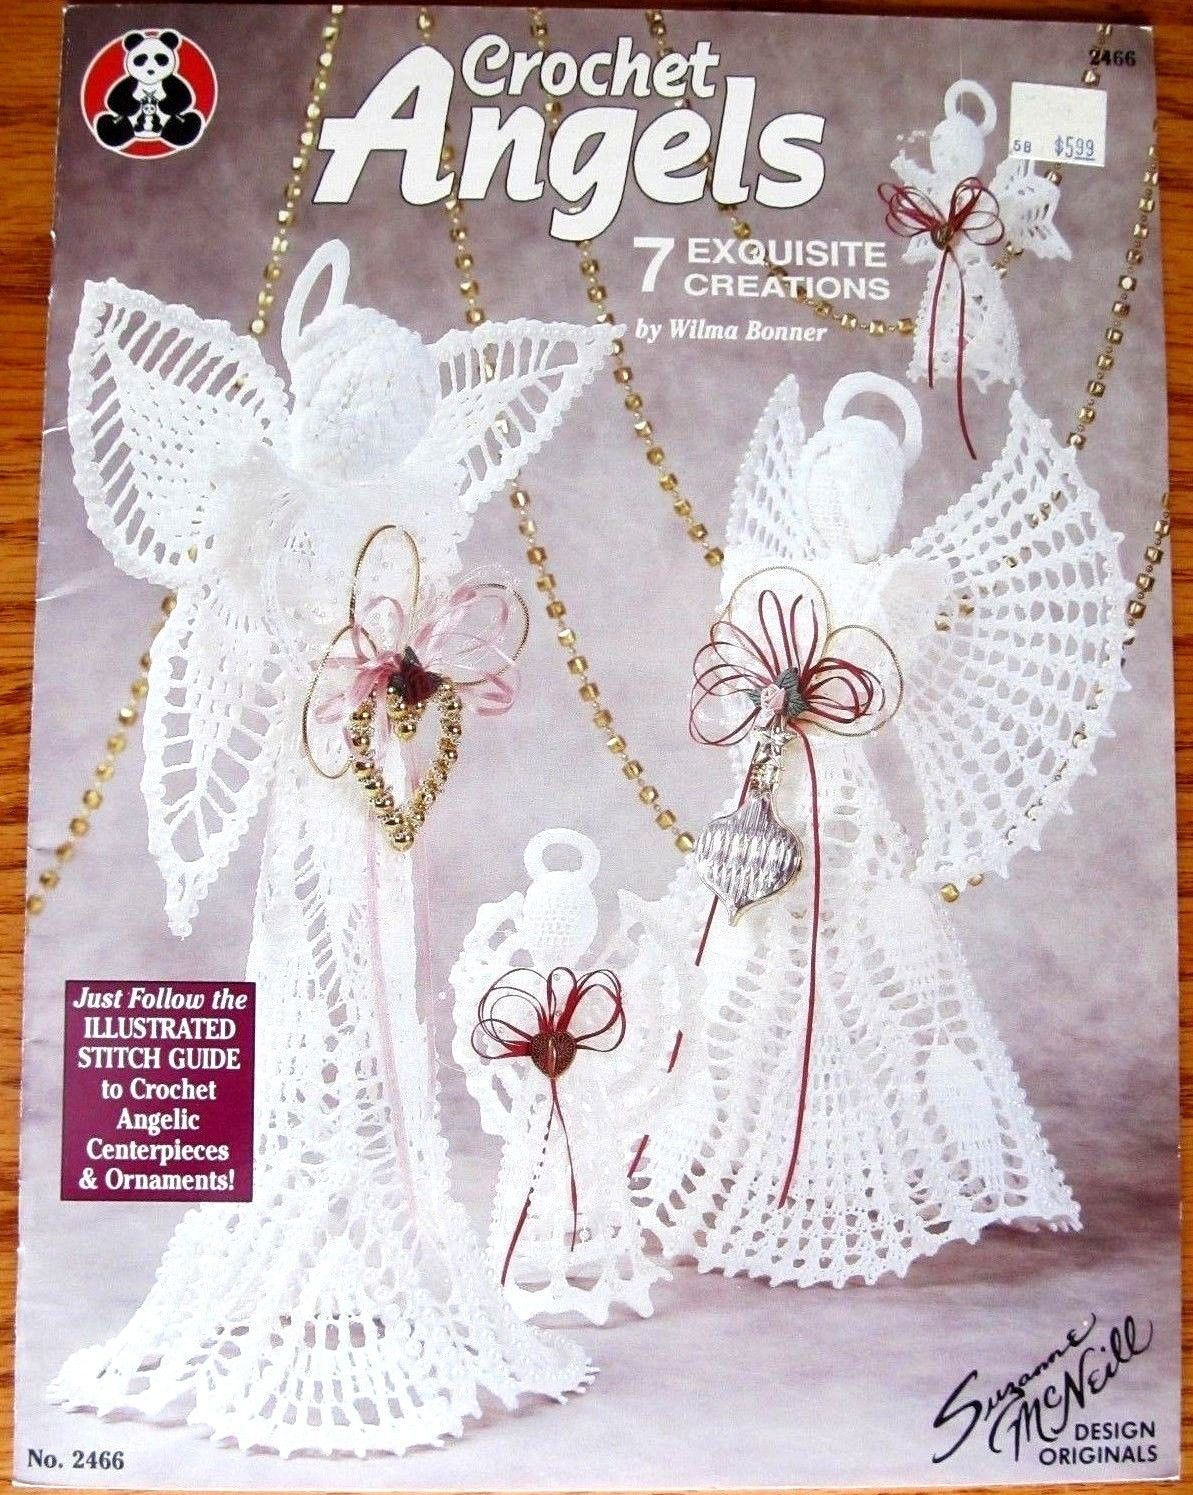 http://www.ebay.com/itm/CROCHET-ANGELS-7-EXQUISITE-CREATIONS-WITH ...